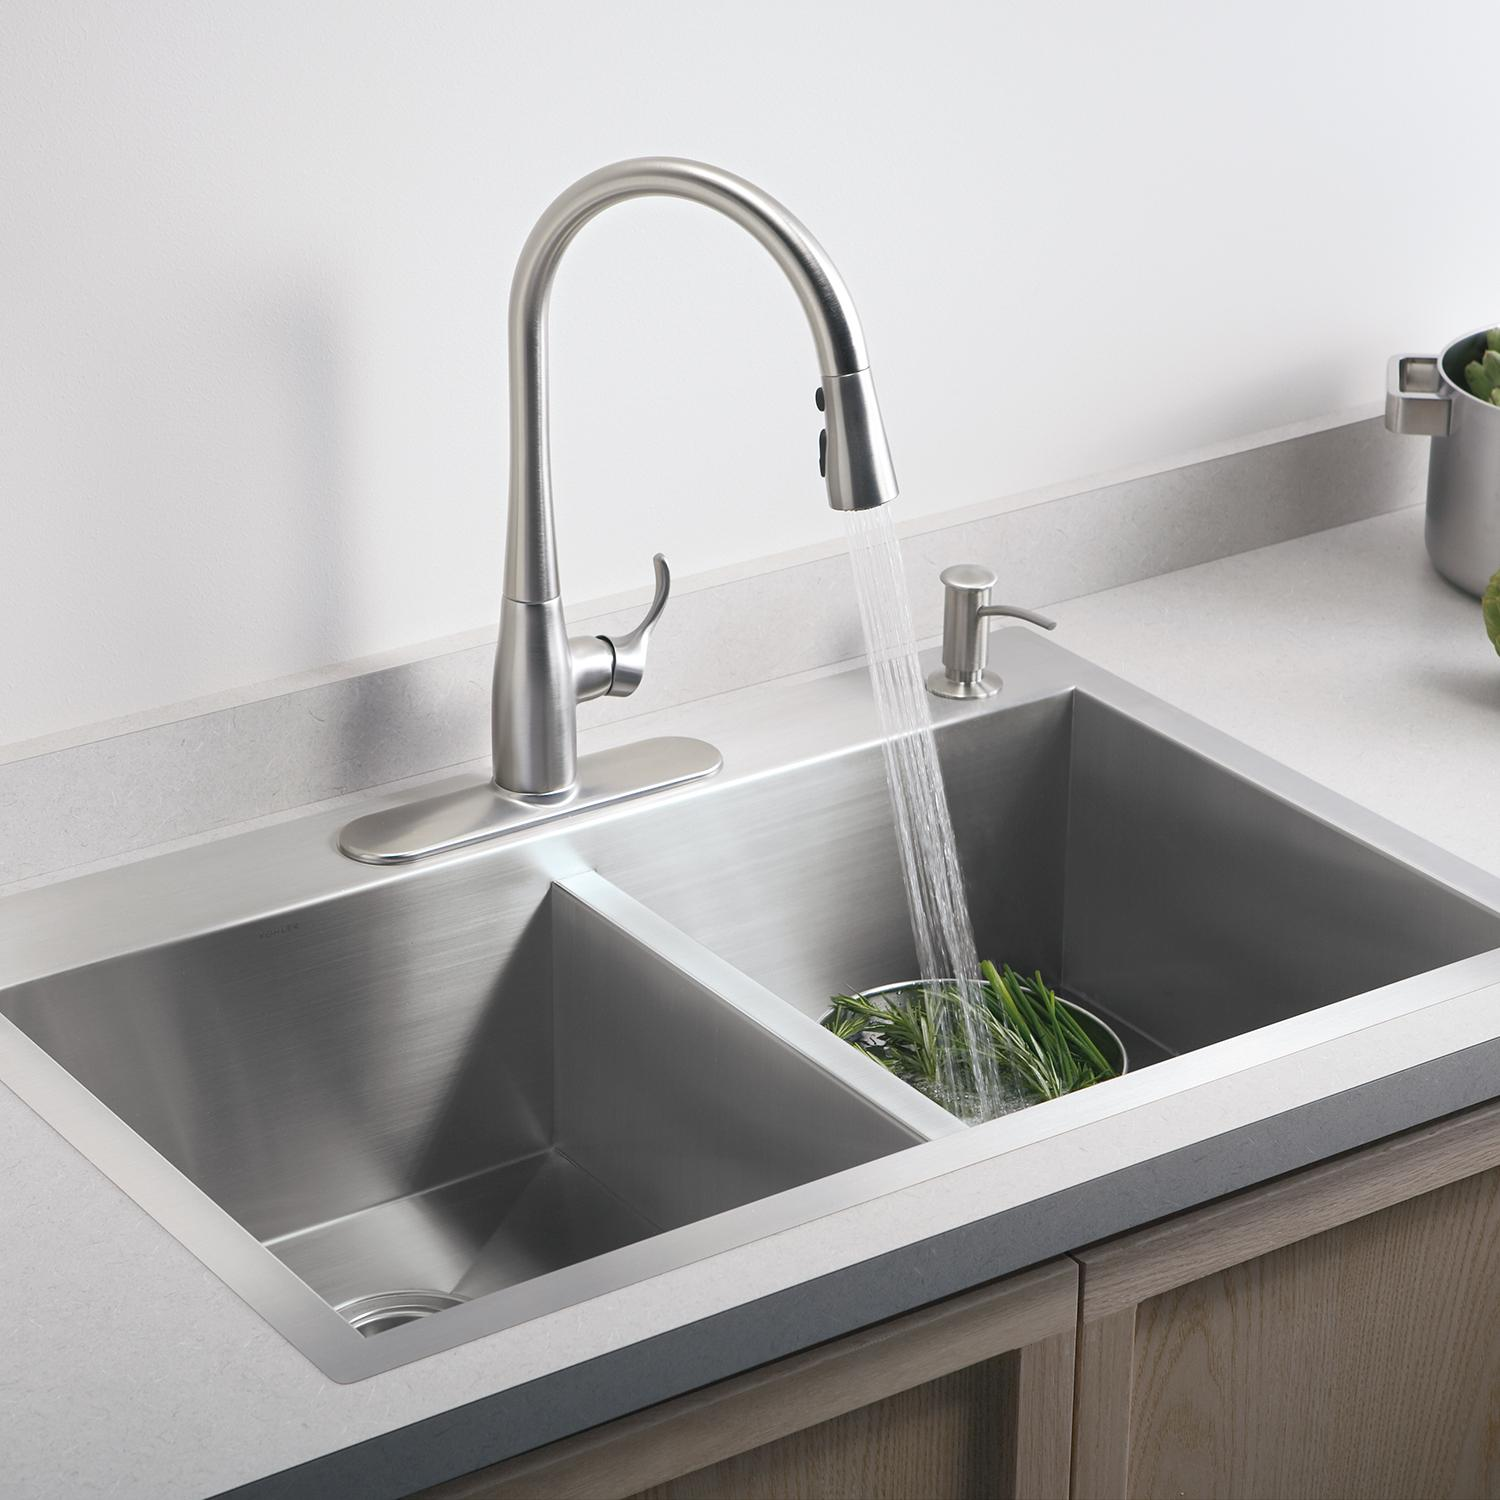 KOHLER K-649-VS Simplice Pull-Down Secondary Sink Faucet, Vibrant ...